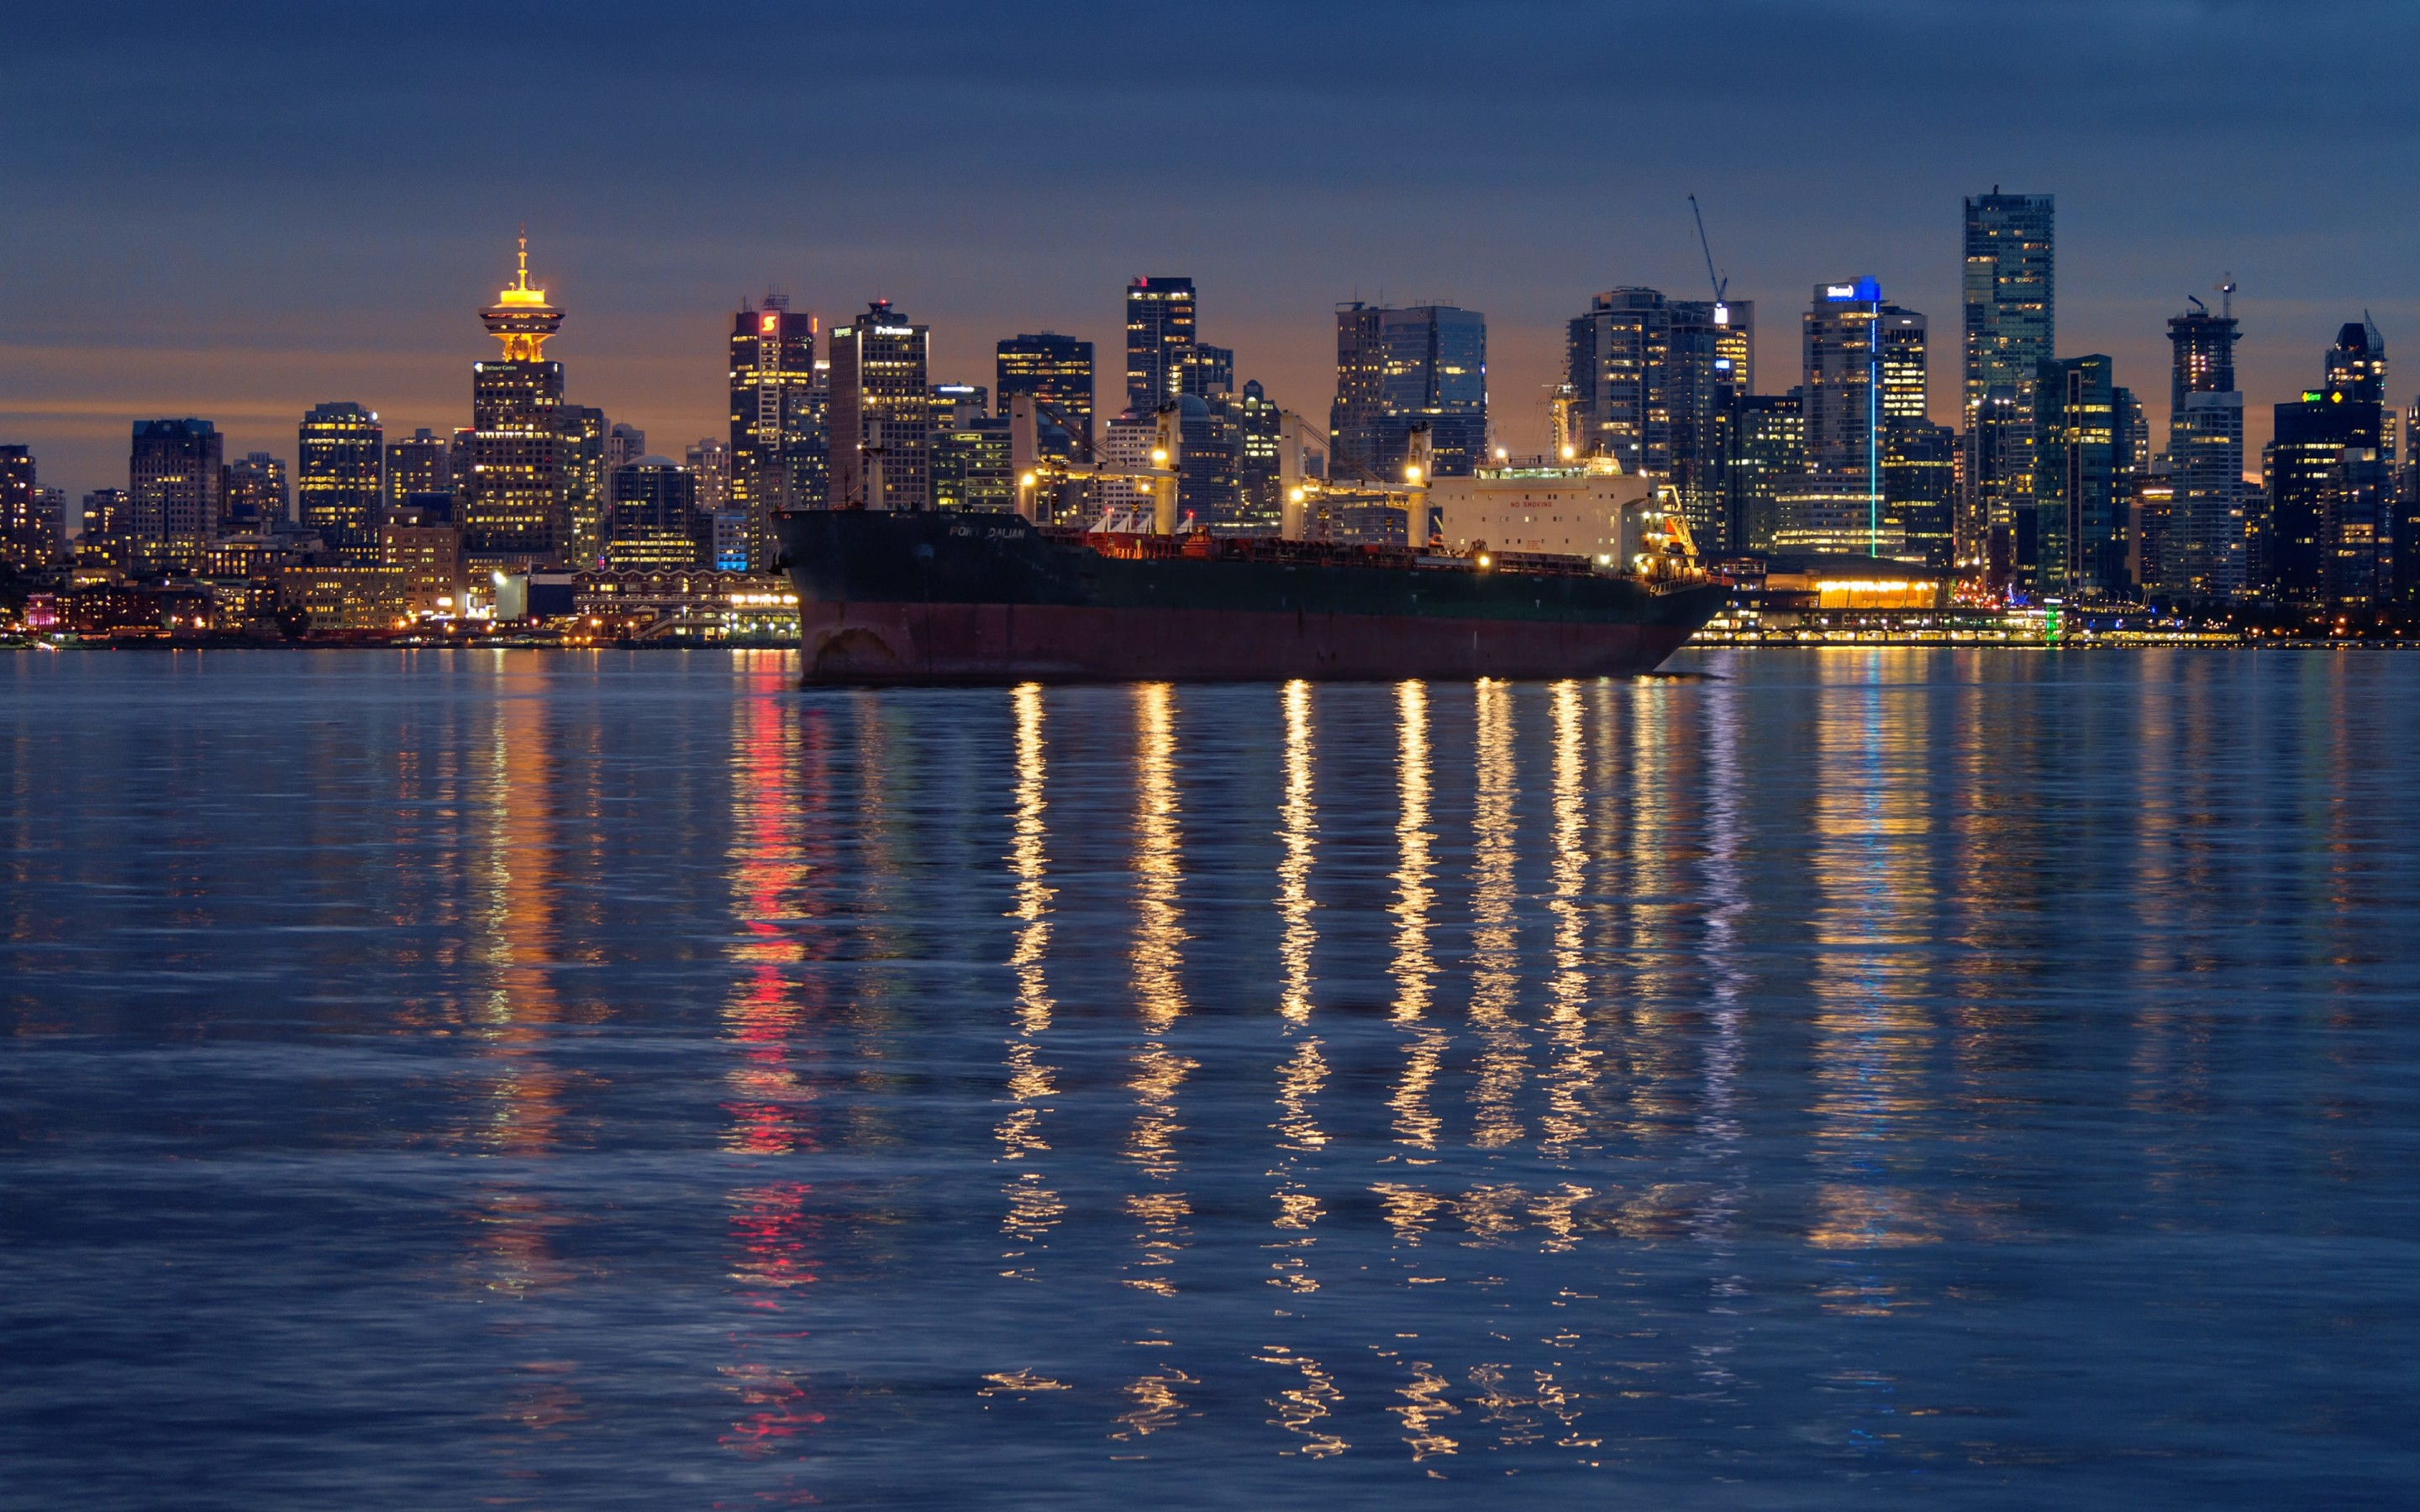 Downtown Vancouver, Canada Wallpaper for Desktop 2880x1800